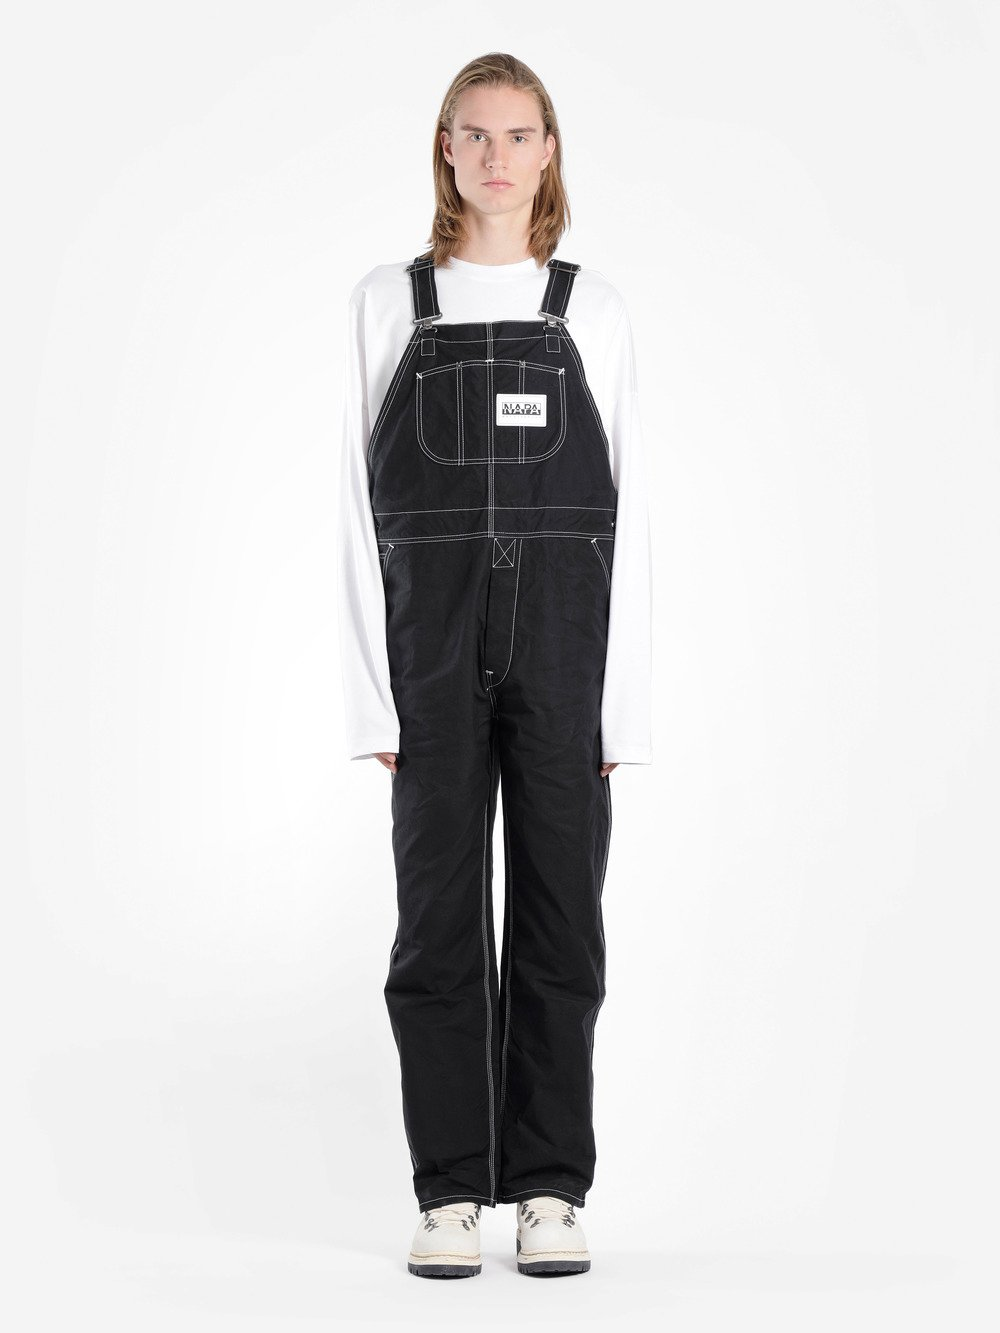 NAPA BY MARTINE ROSE BLACK COTTON DUNGAREES WITH CONTRAST STITCHING